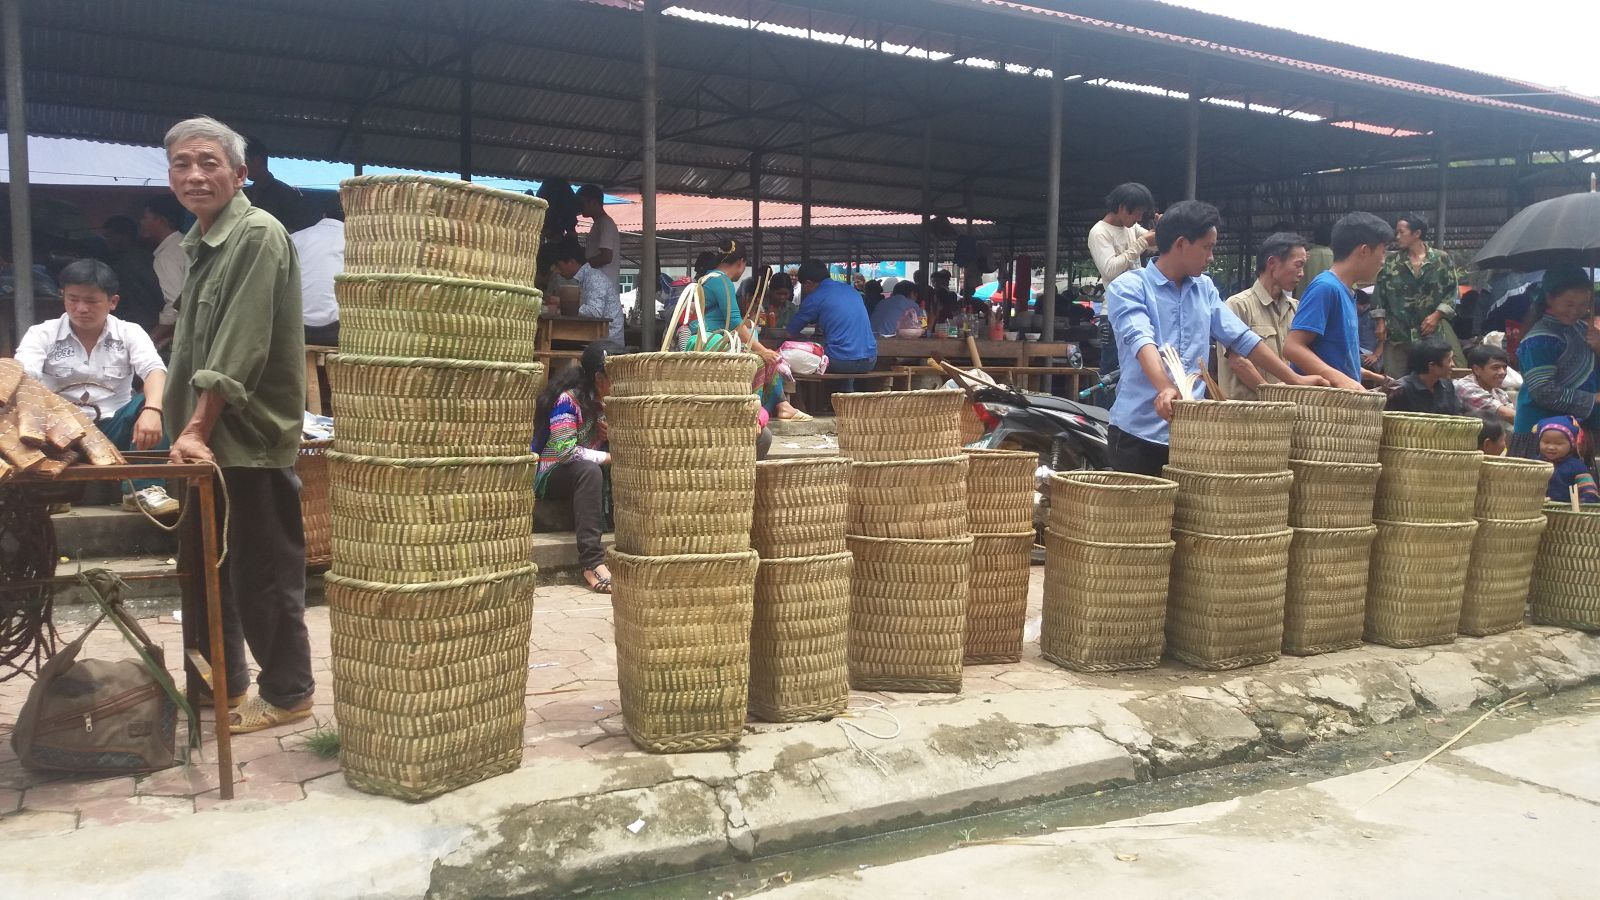 Sapa tours to colorful Bac Ha market